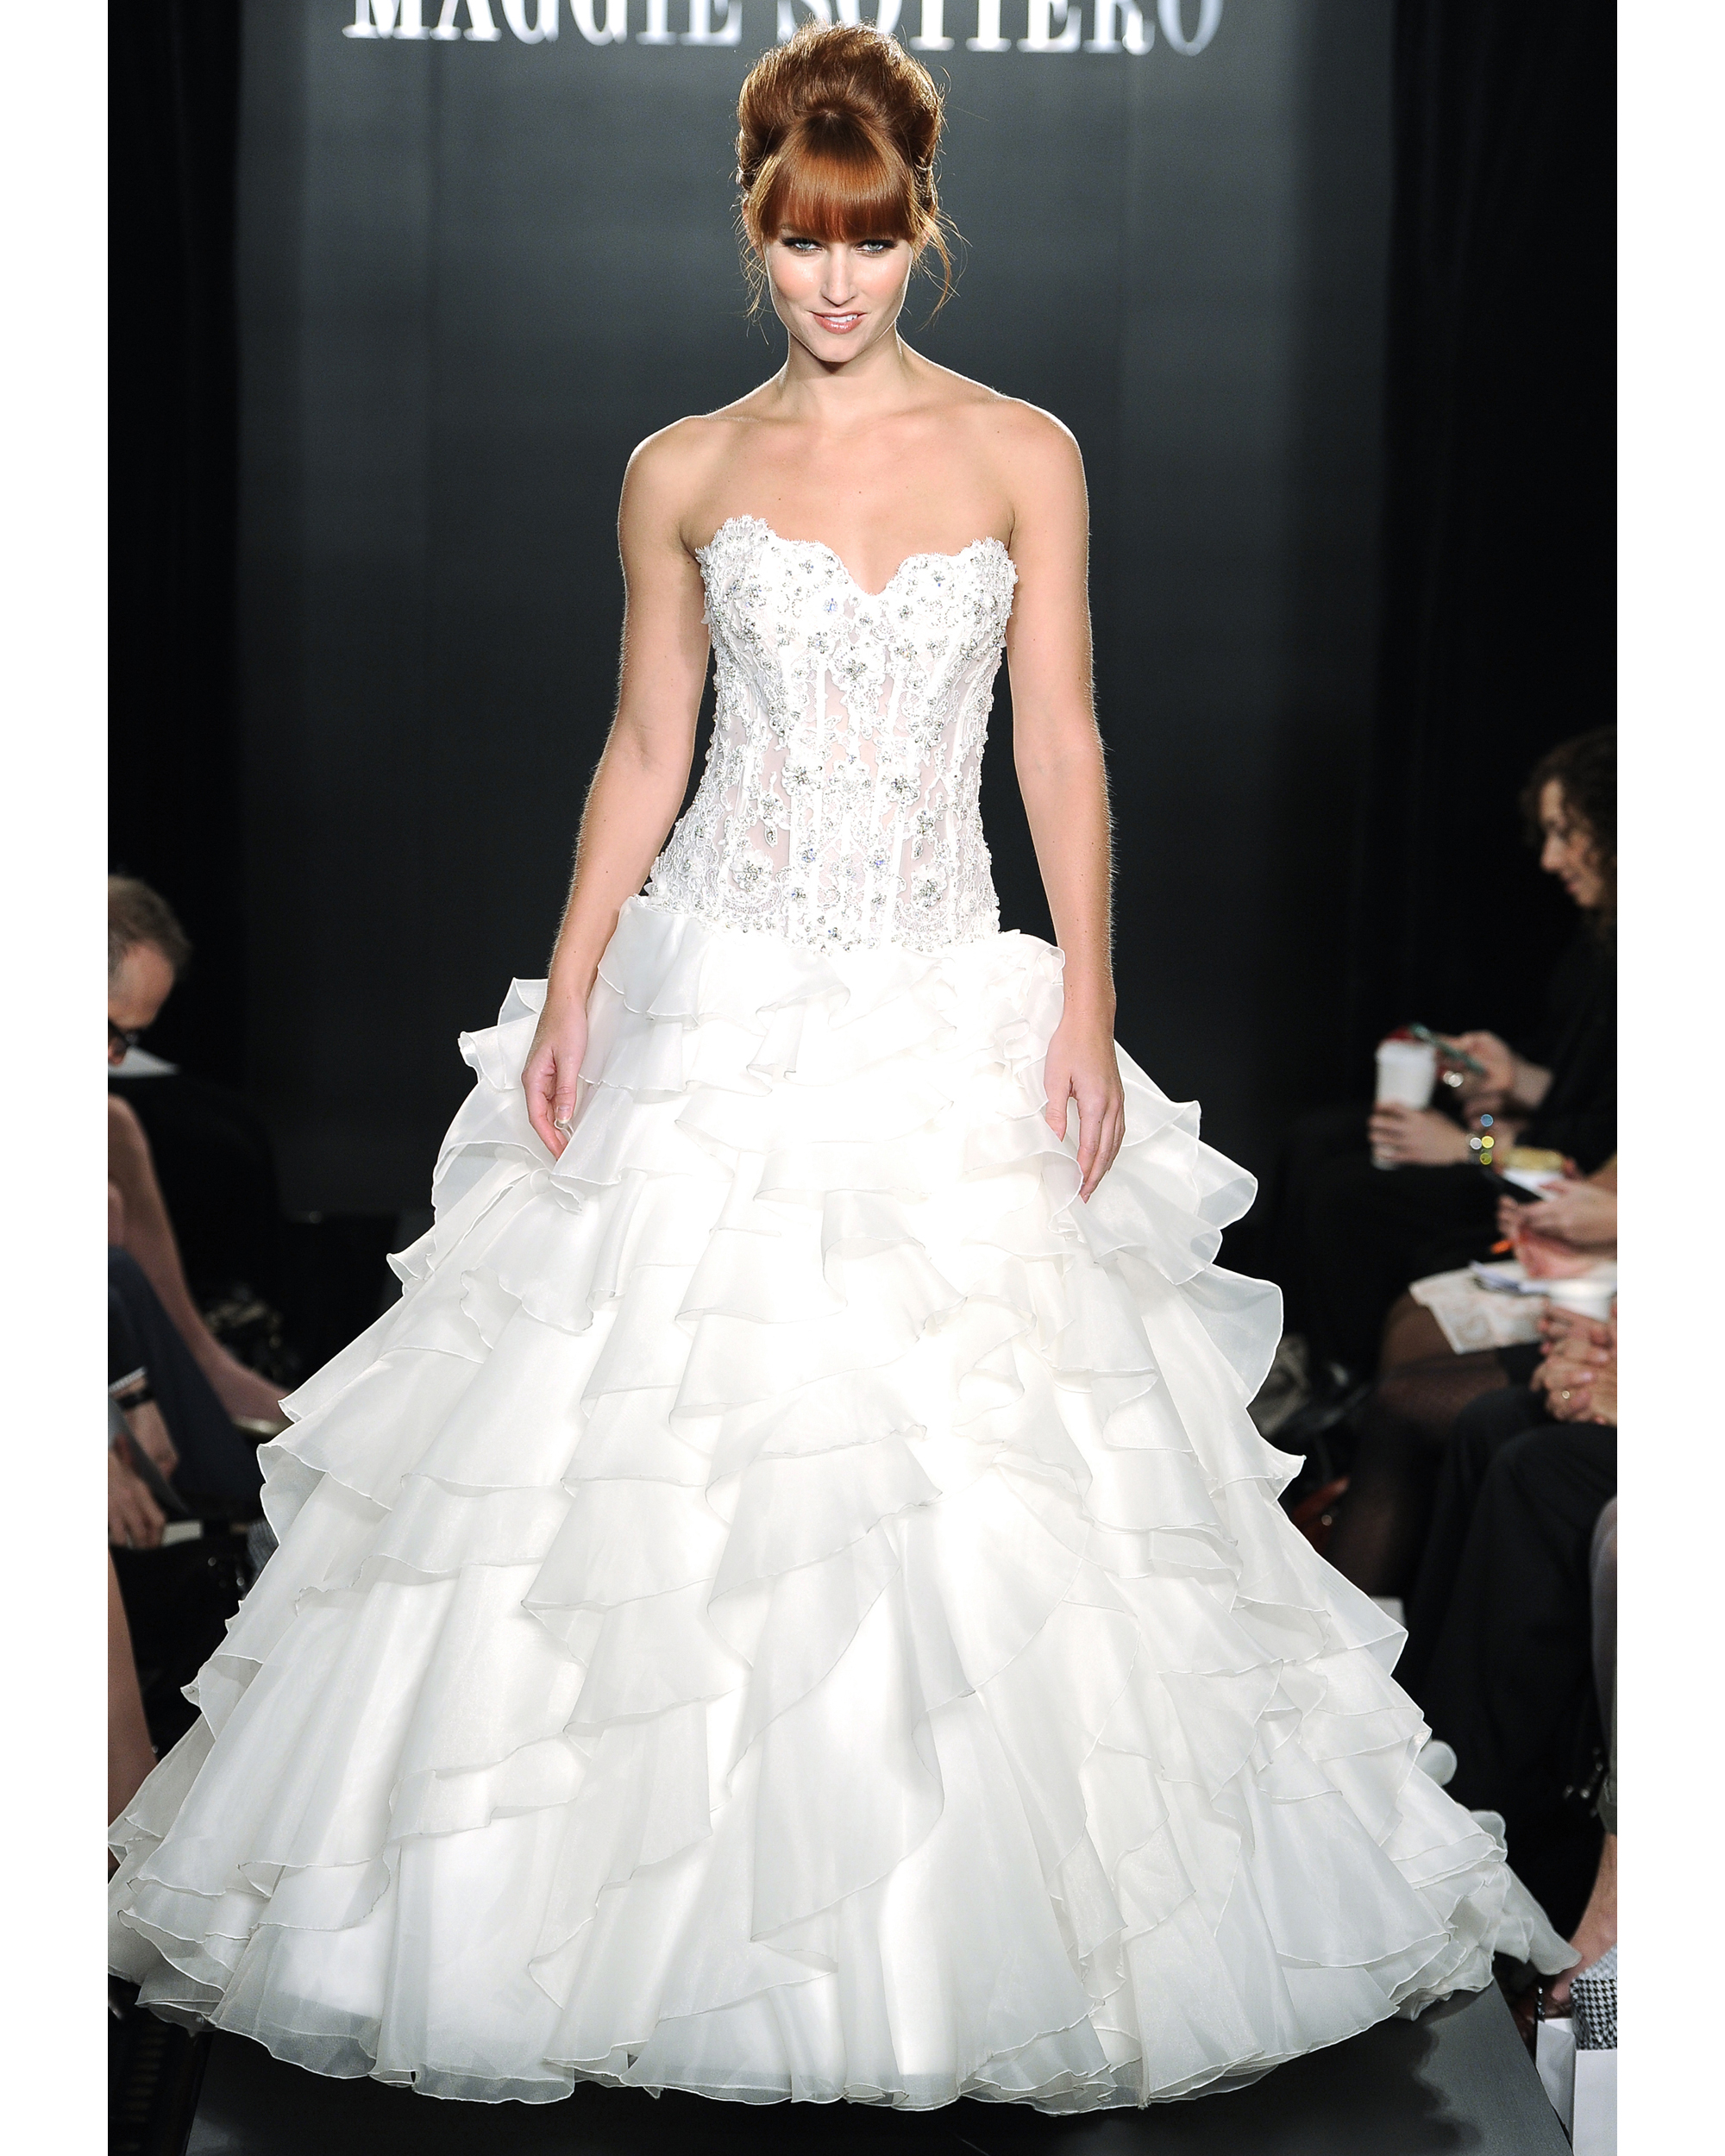 maggie-sottero-fall2012-wd108109_001.jpg